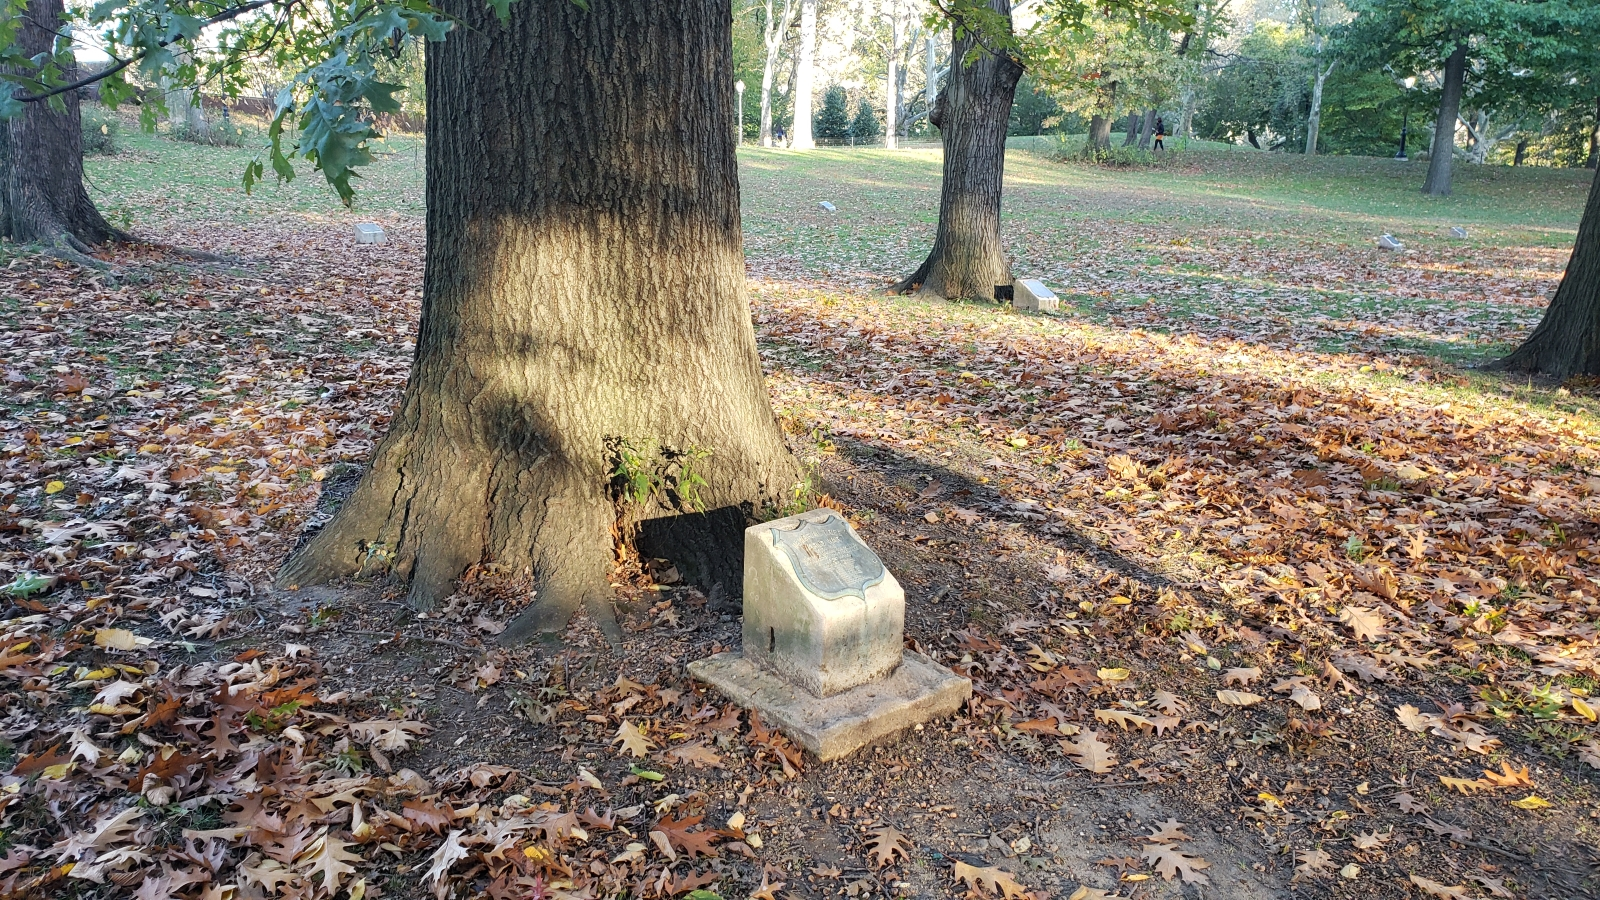 One of the remaining trees with a plaque